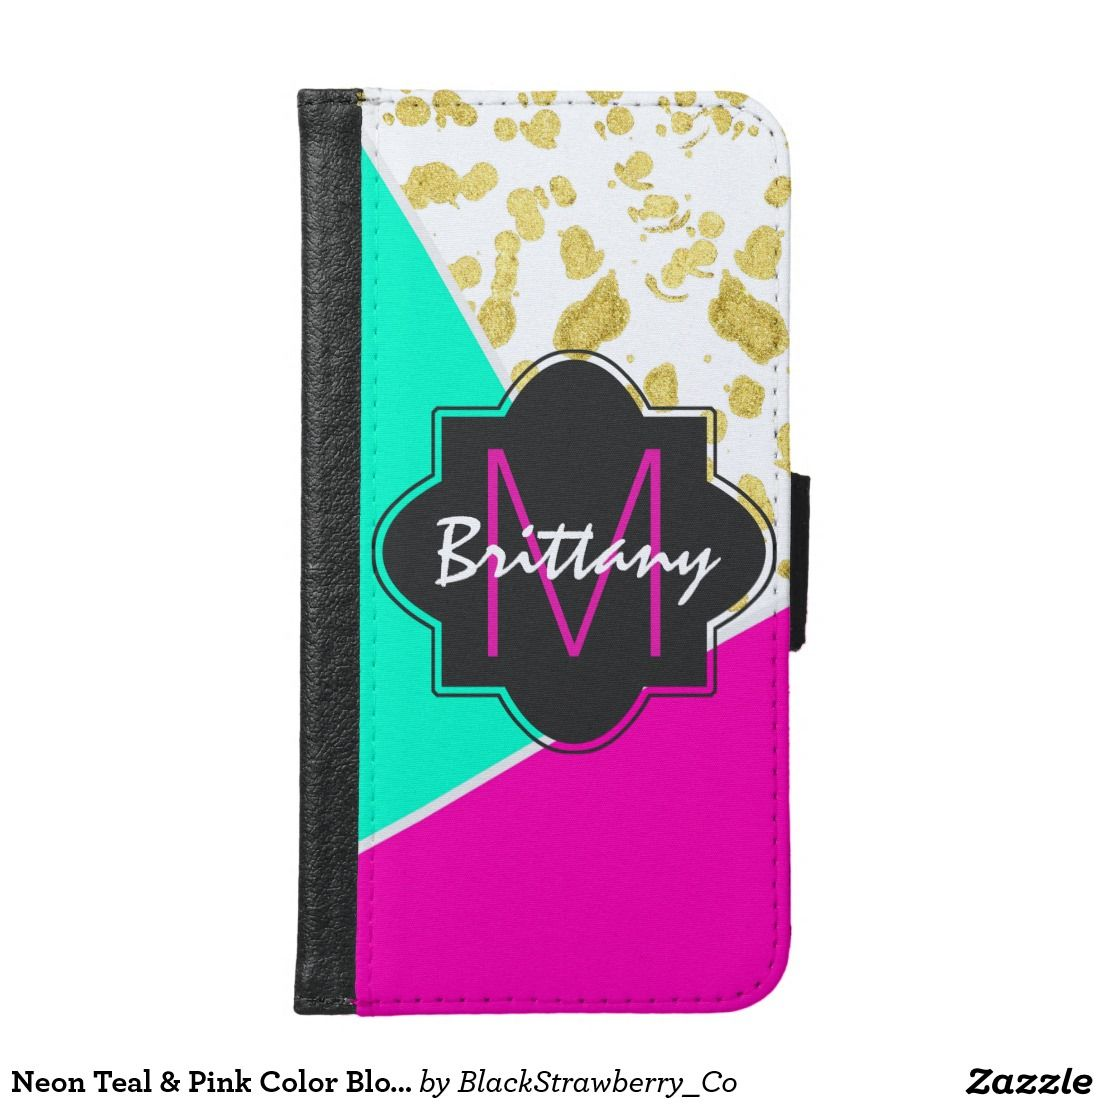 Neon Teal & Pink Color Block & Faux Gold Monogram